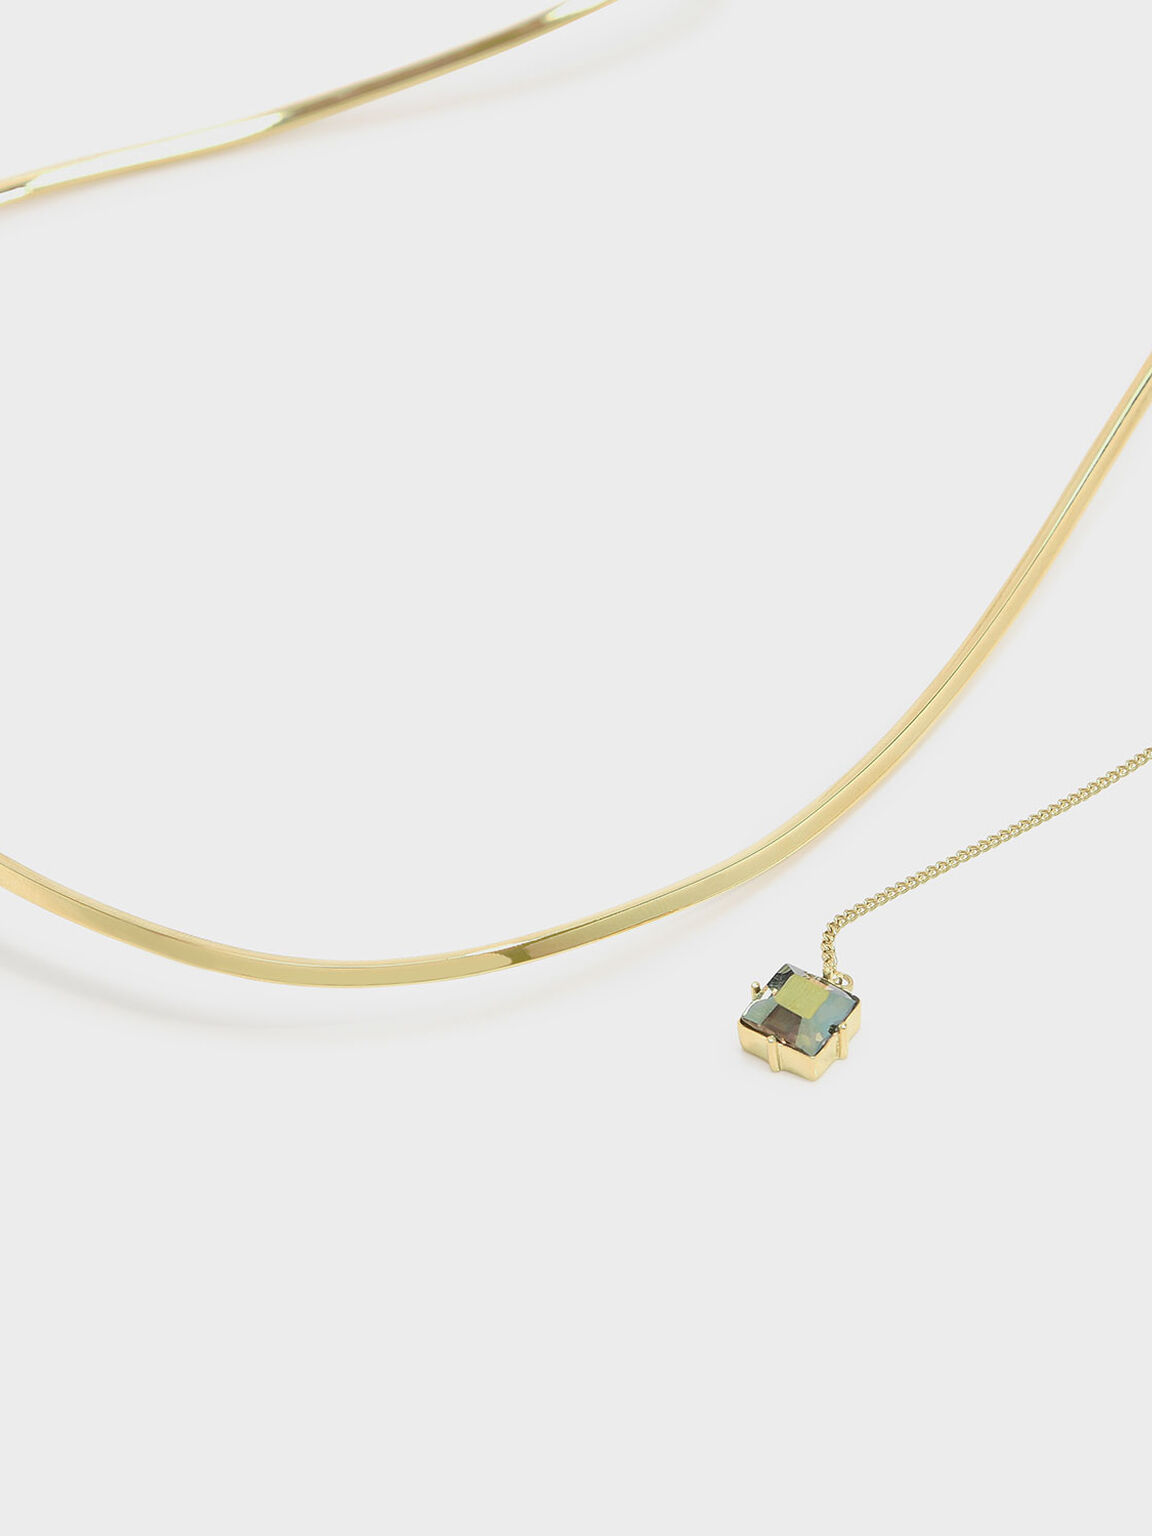 Crystal Charm Necklace, Gold, hi-res